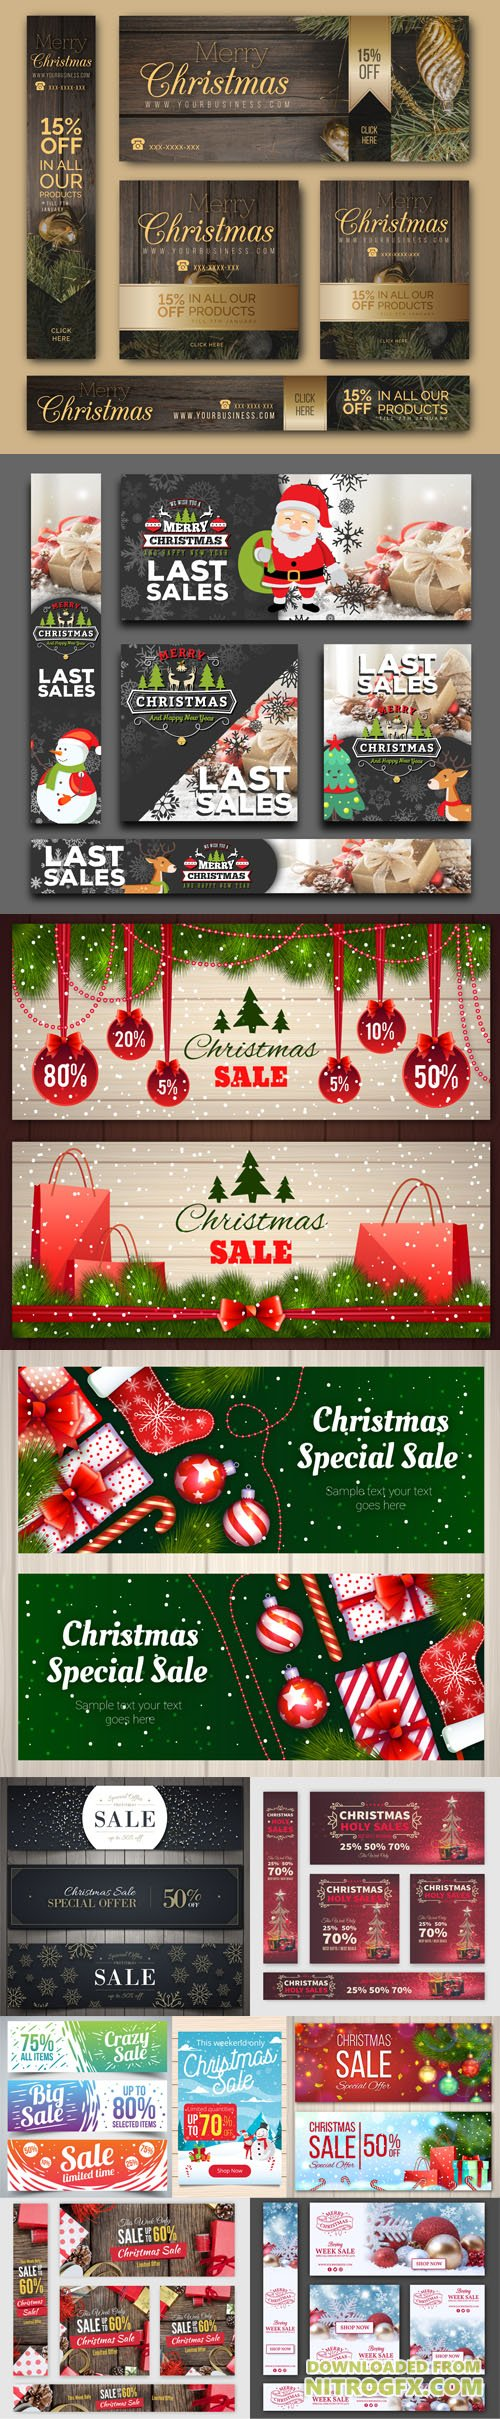 Cute Christmas Sales Banners Collection in Vector